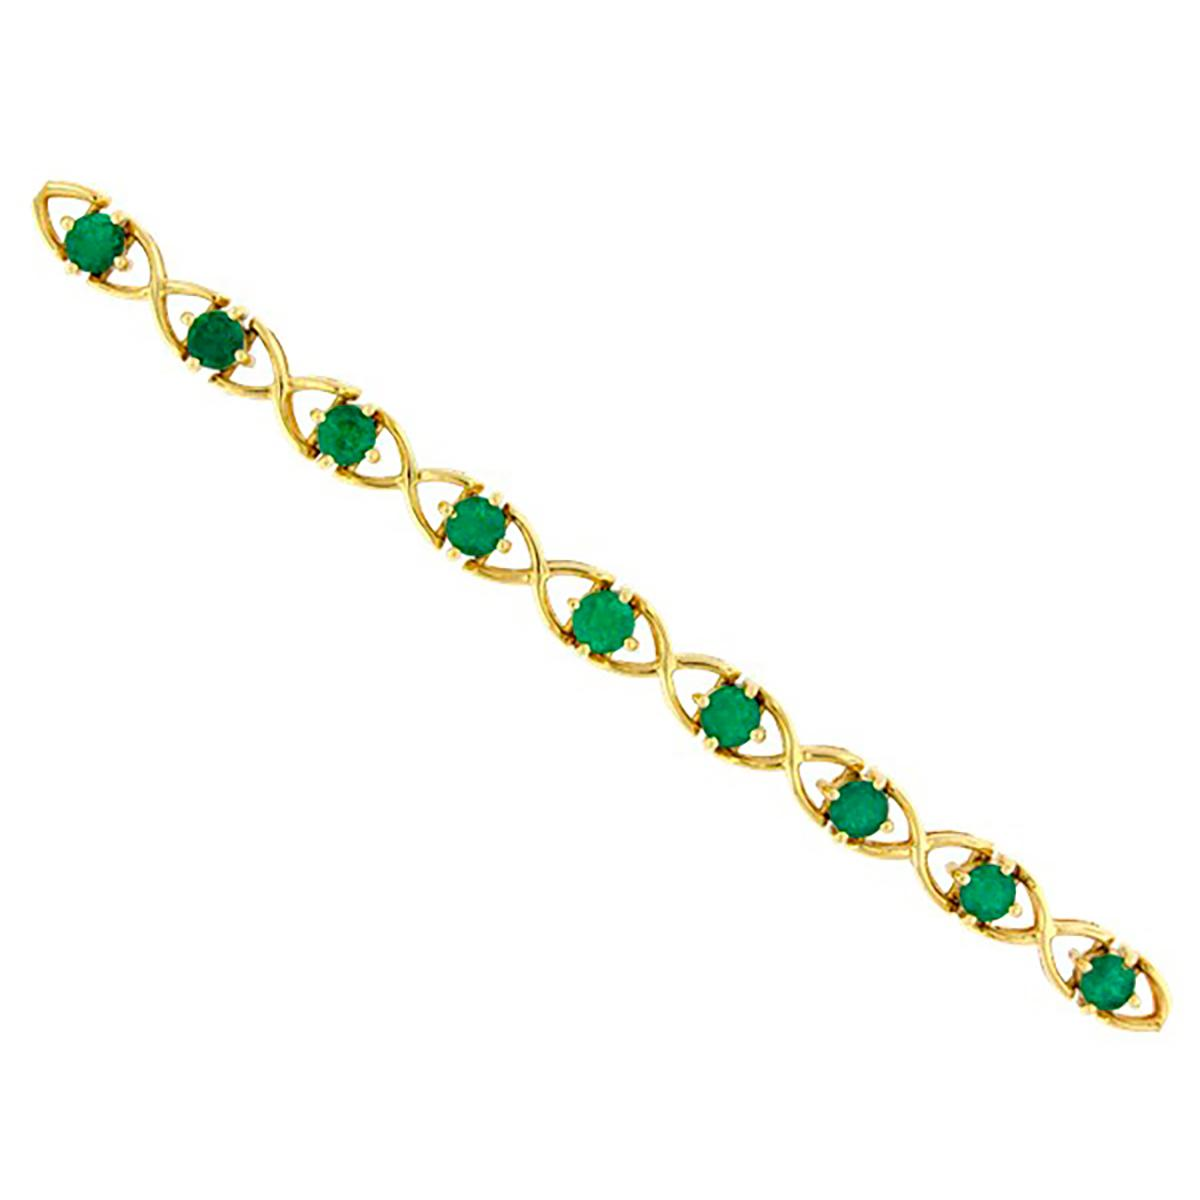 18k-yellow-gold-emerald-bracelet-with-16-round-cut-natural-colombian-emeralds